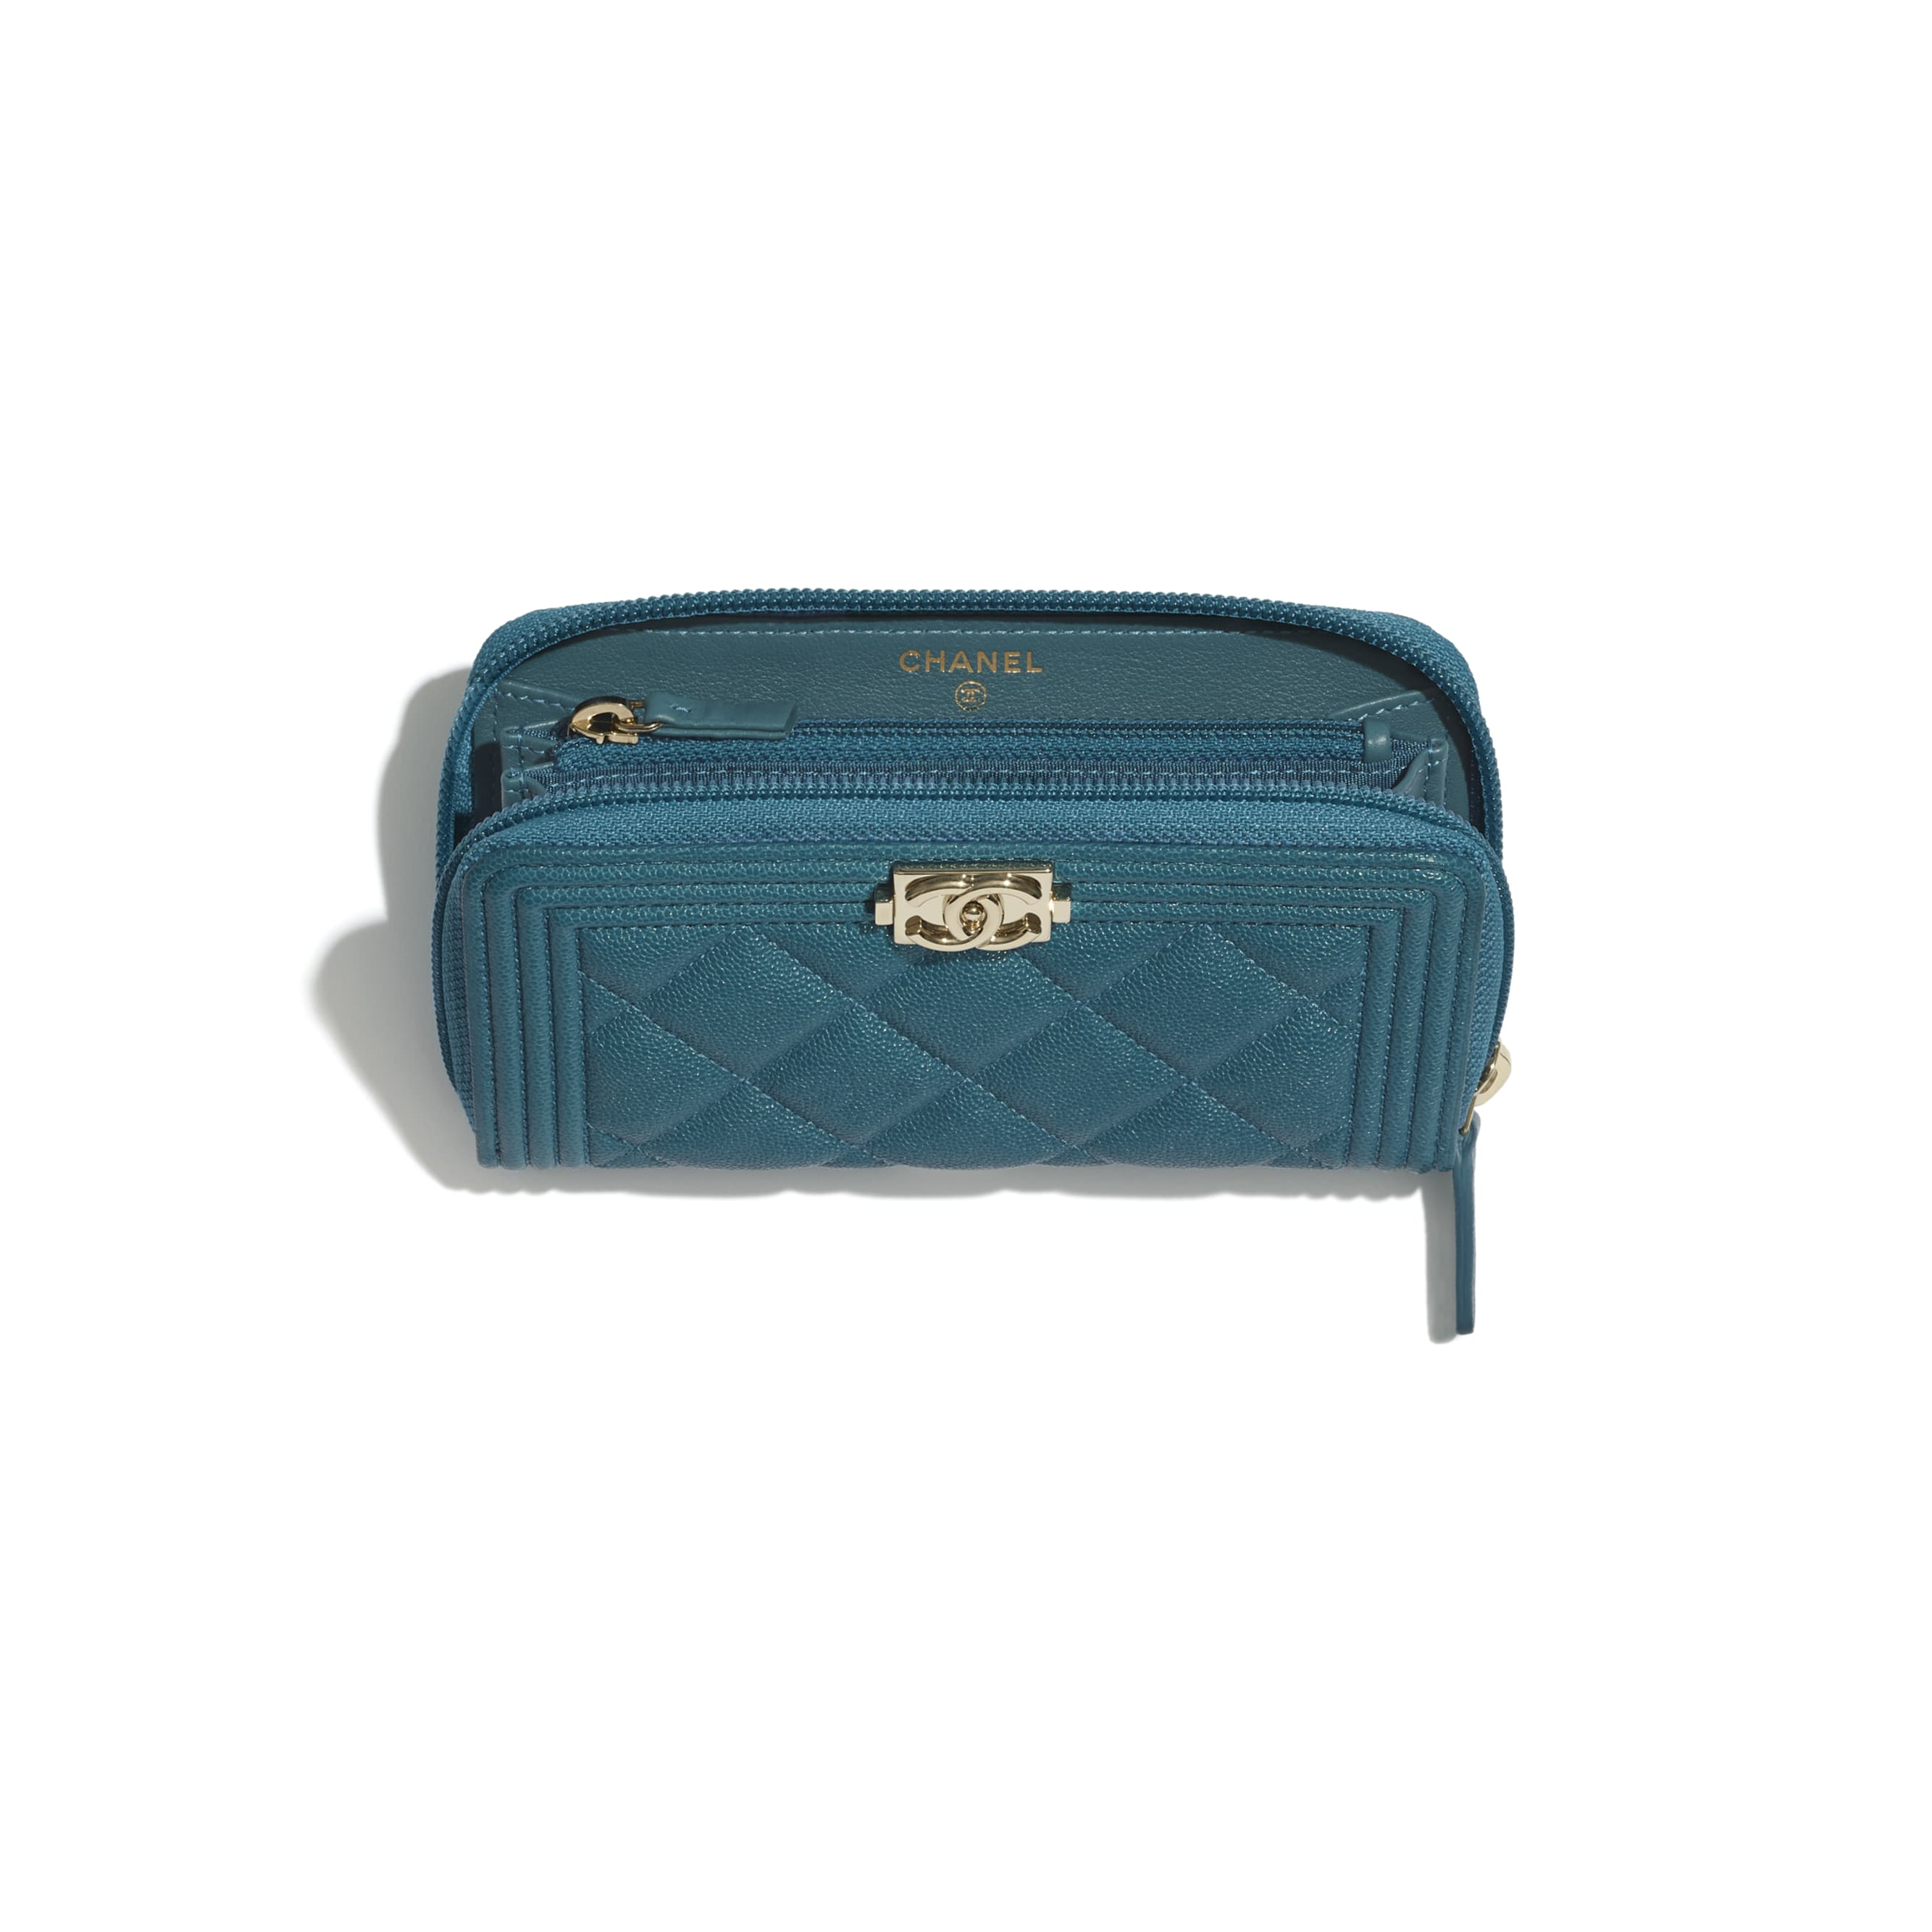 BOY CHANEL Zipped Wallet - Turquoise - Grained Calfskin & Gold-Tone Metal - CHANEL - Other view - see standard sized version